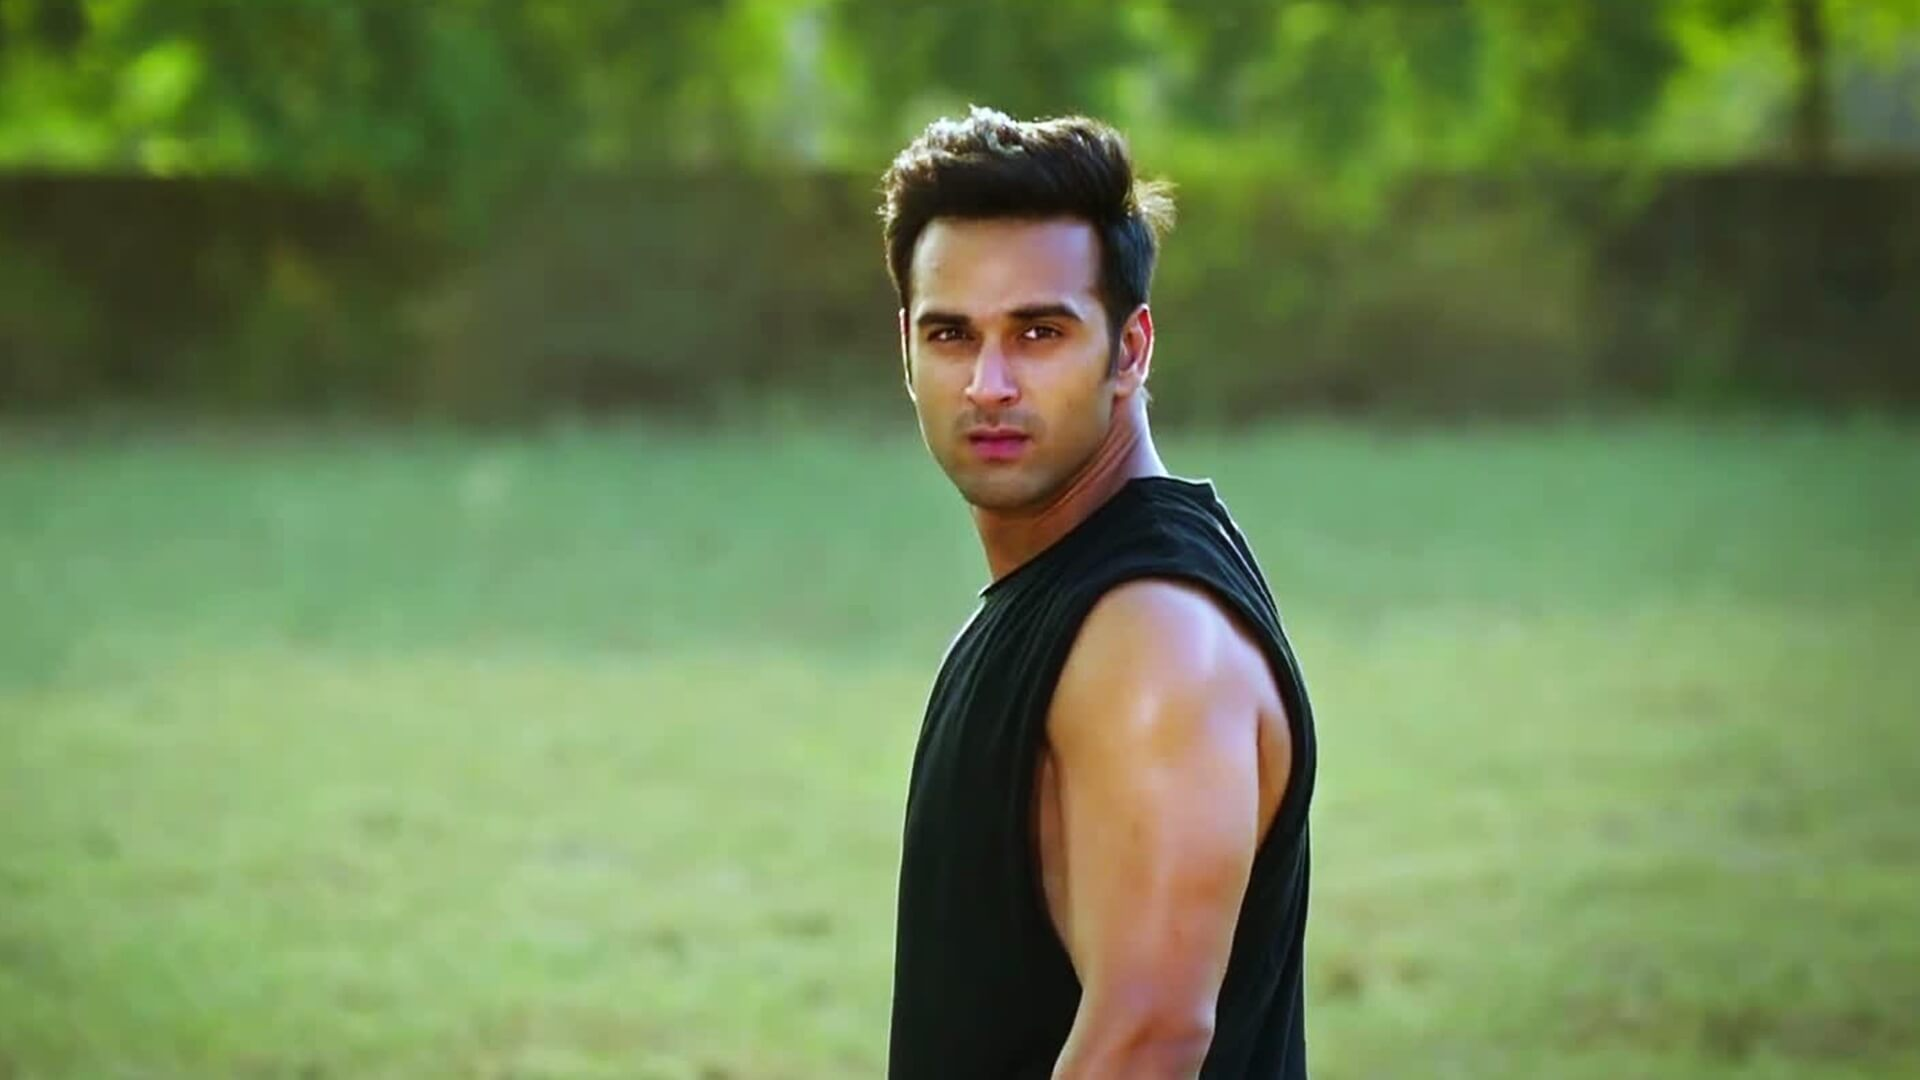 Pulkit Samrat Wife, Movies, Age, Height, Images(photo), Biography, Hairstyle, Girlfriend, Family, Married, Net Worth, Education, Wiki, Twitter, Instagram, Facebook, Imdb (42)